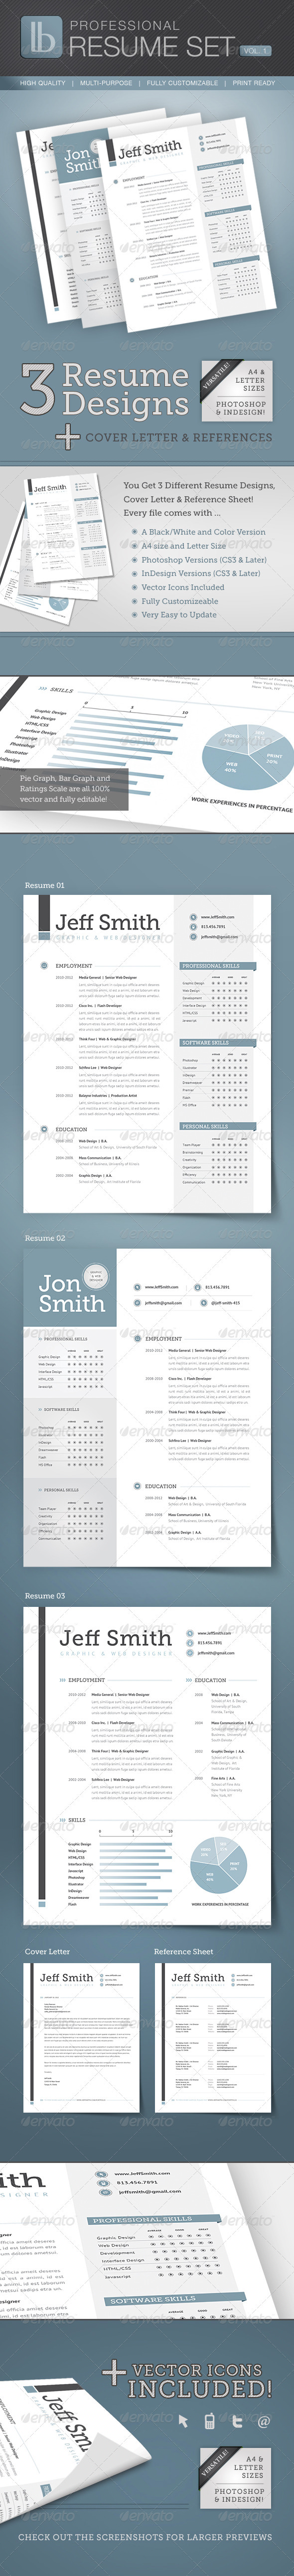 Professional Resume Set | Volume 1